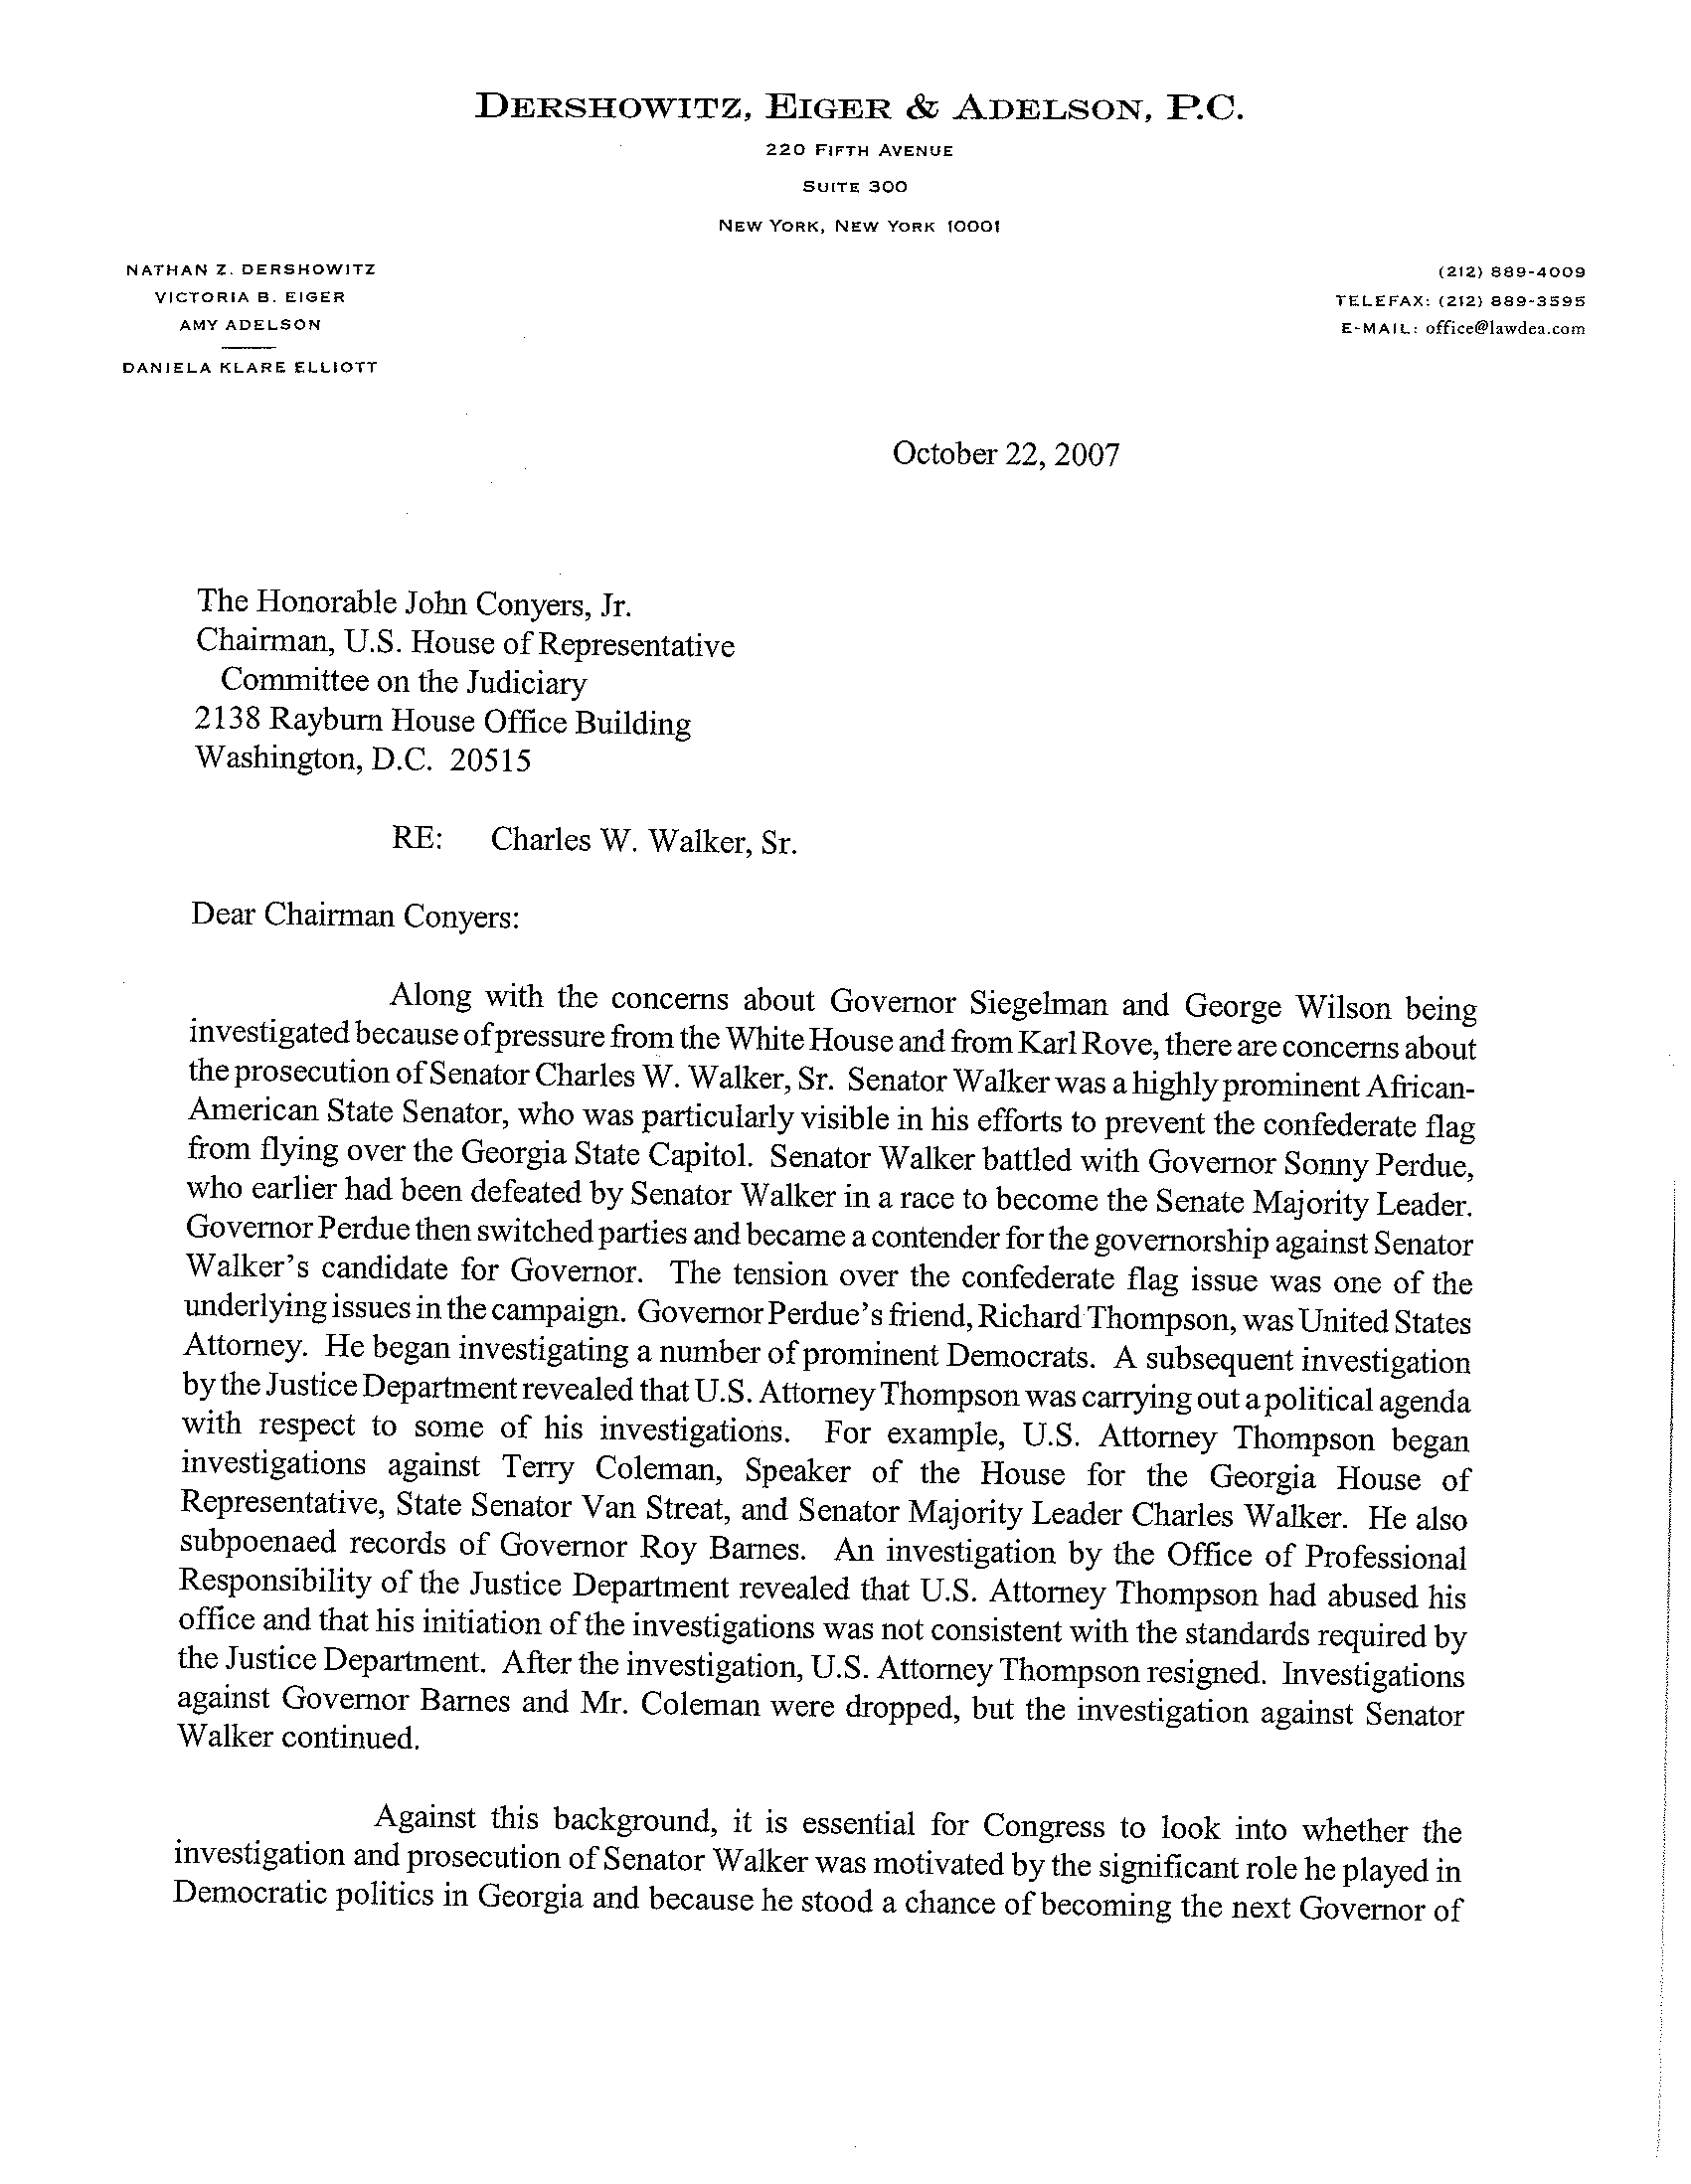 Letter from Nathan Dershowitz on Sen. Walker